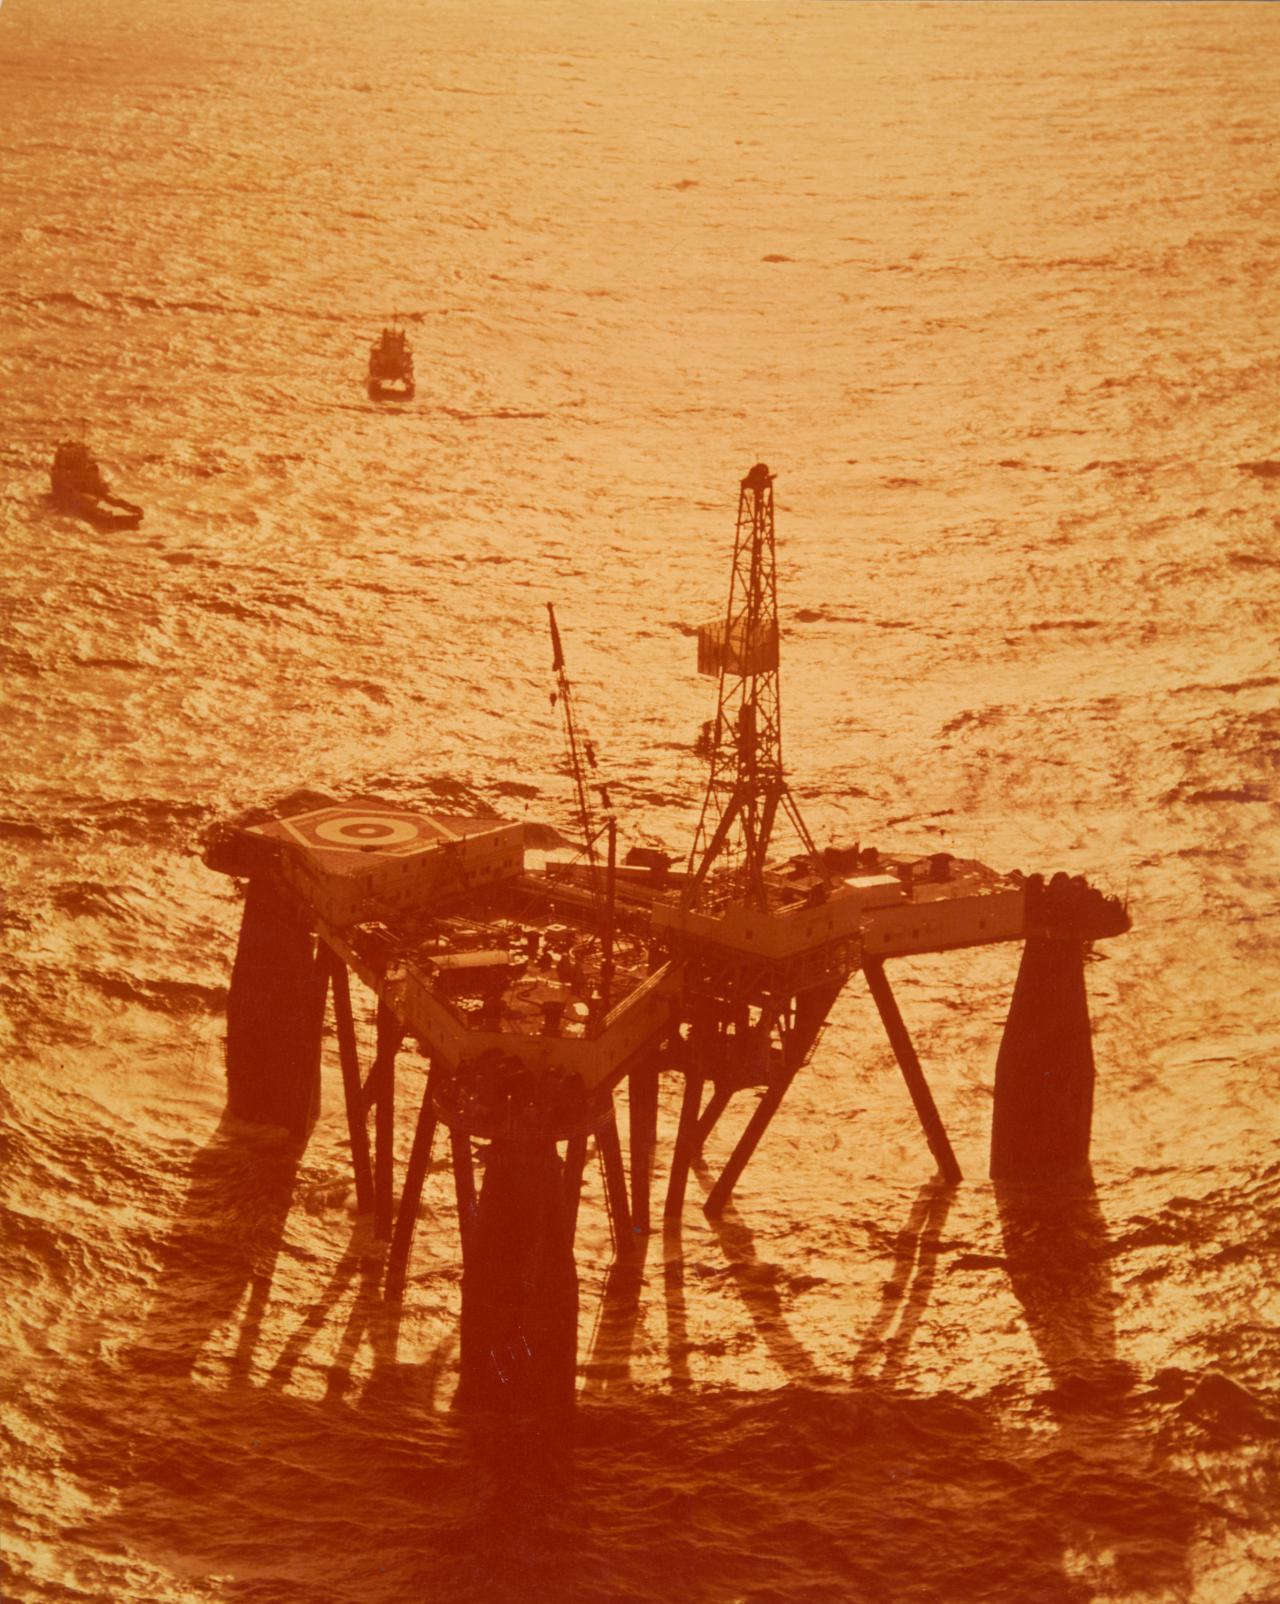 No title (Oil rig at sunset)